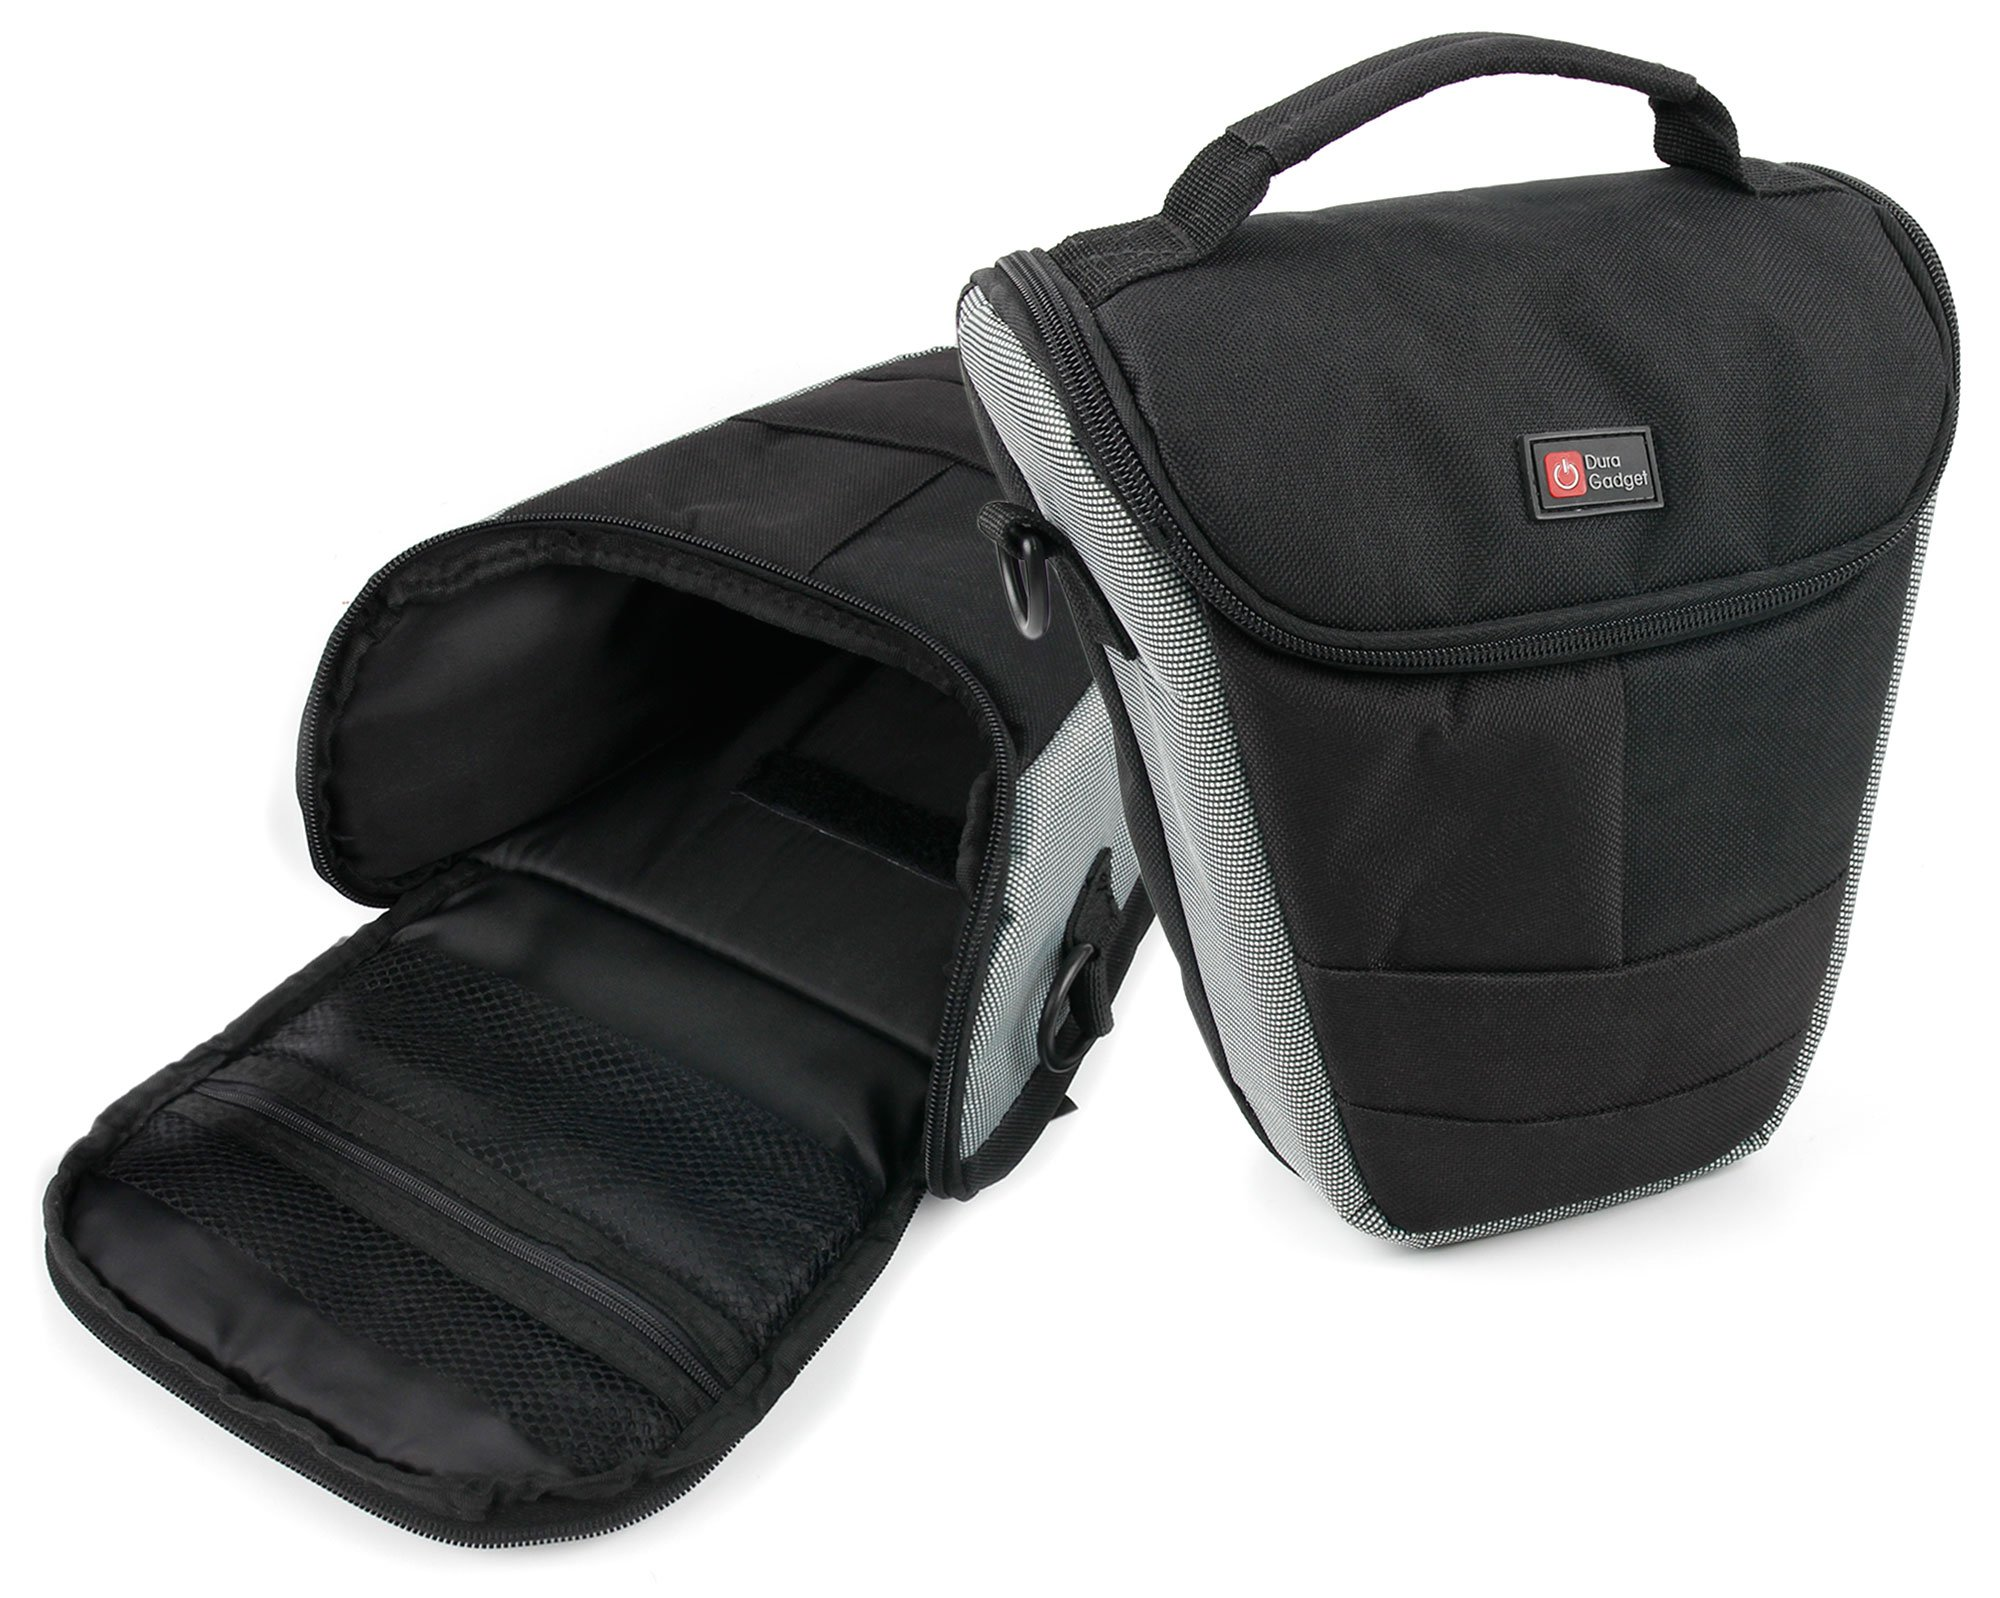 Ultra Portable Carry Case With Shoulder Strap In Black